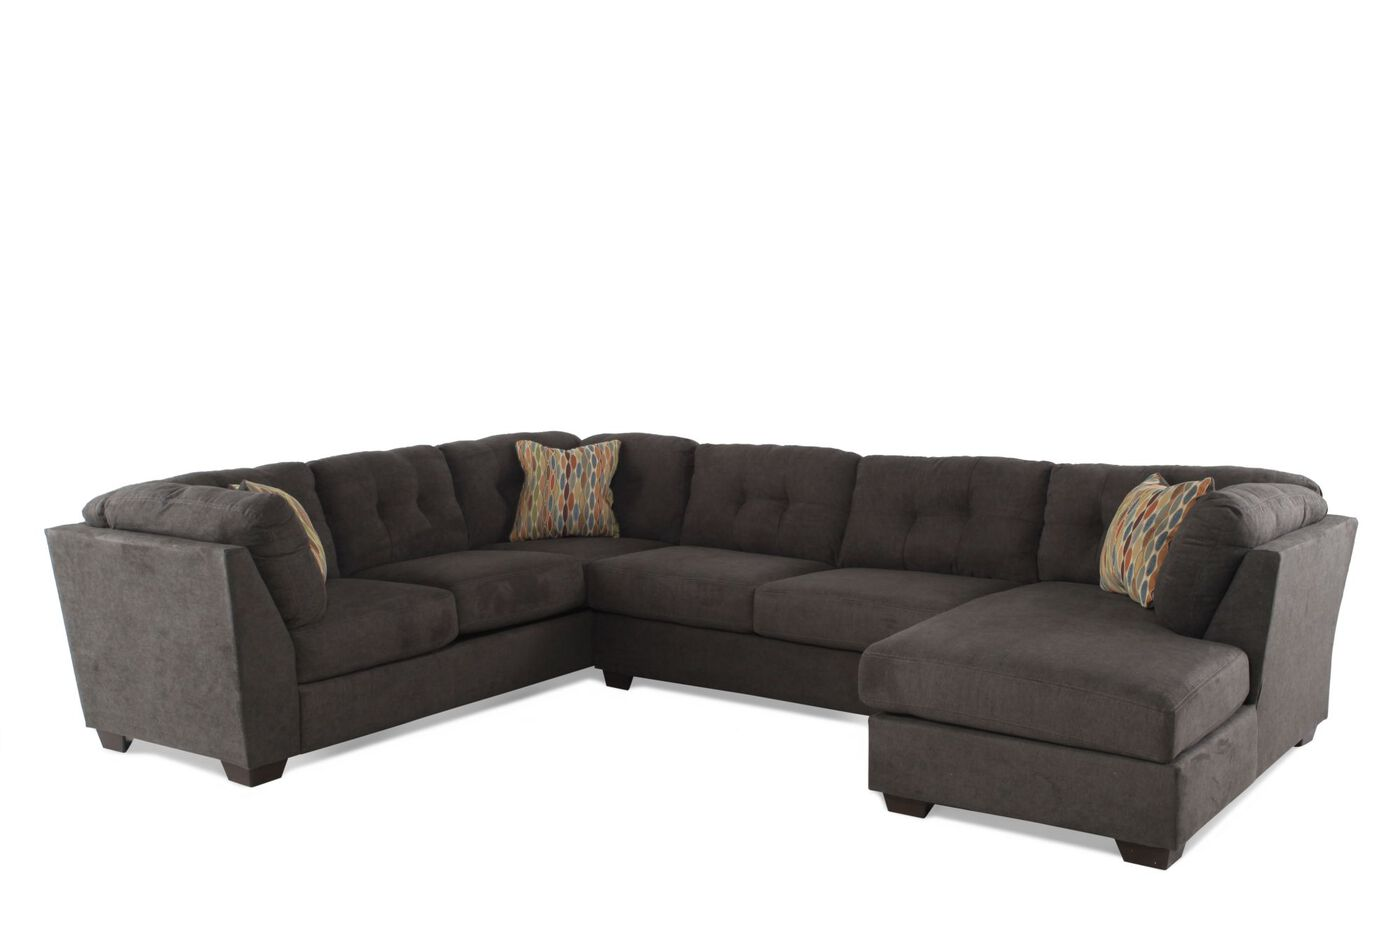 Three Piece Microfiber Sectional In Chocolate Brown